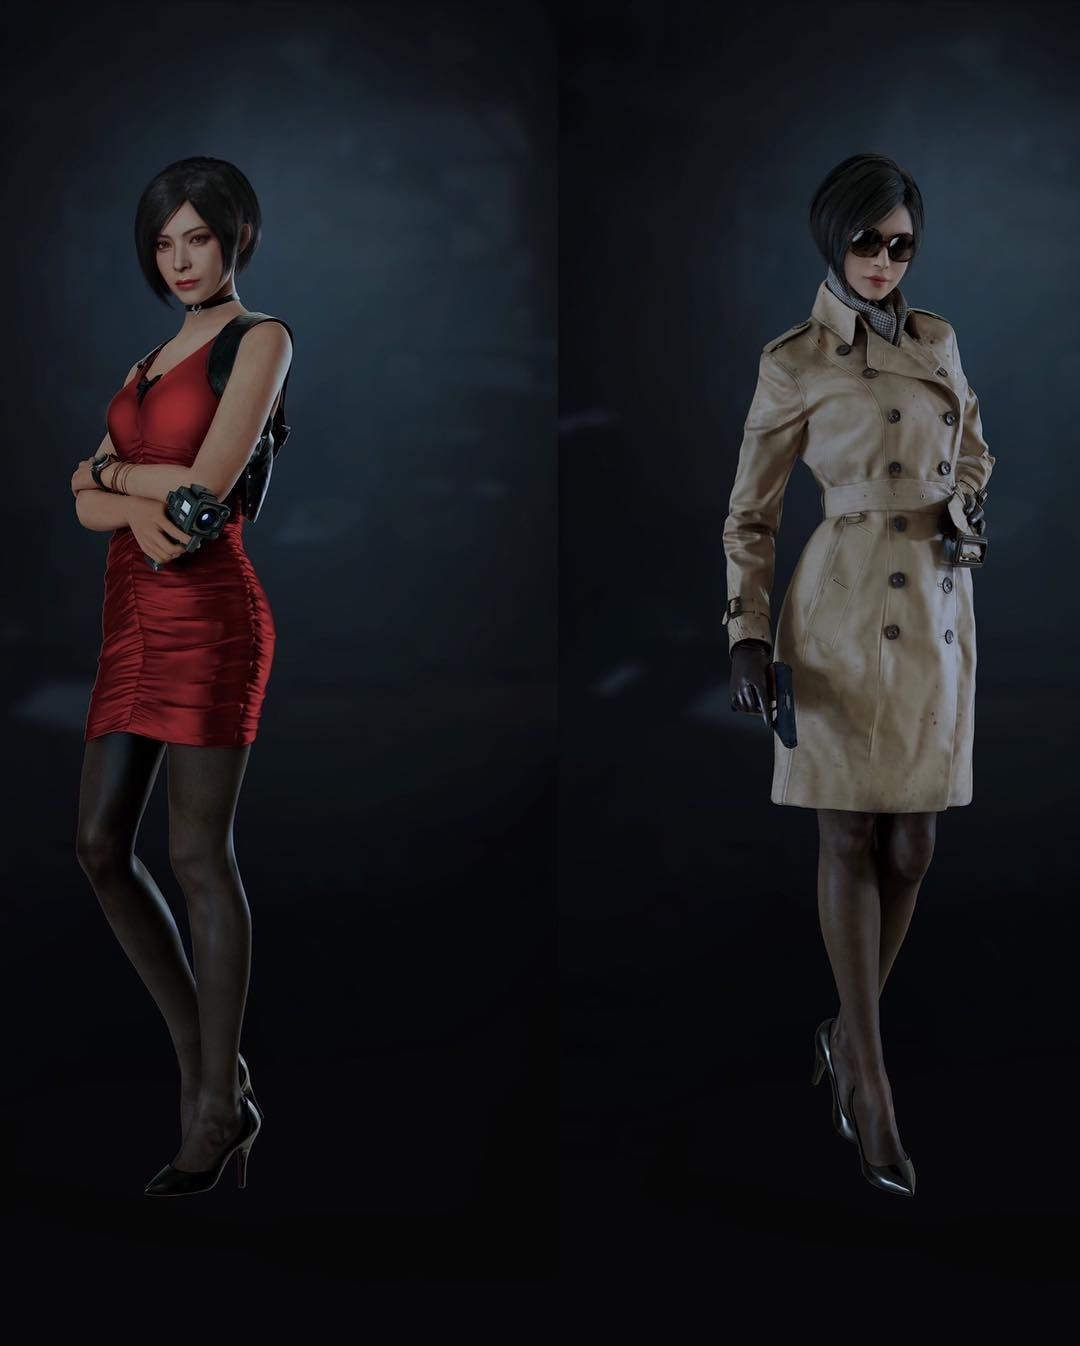 New Official Images Of Residentevil2 Characters صور جديده